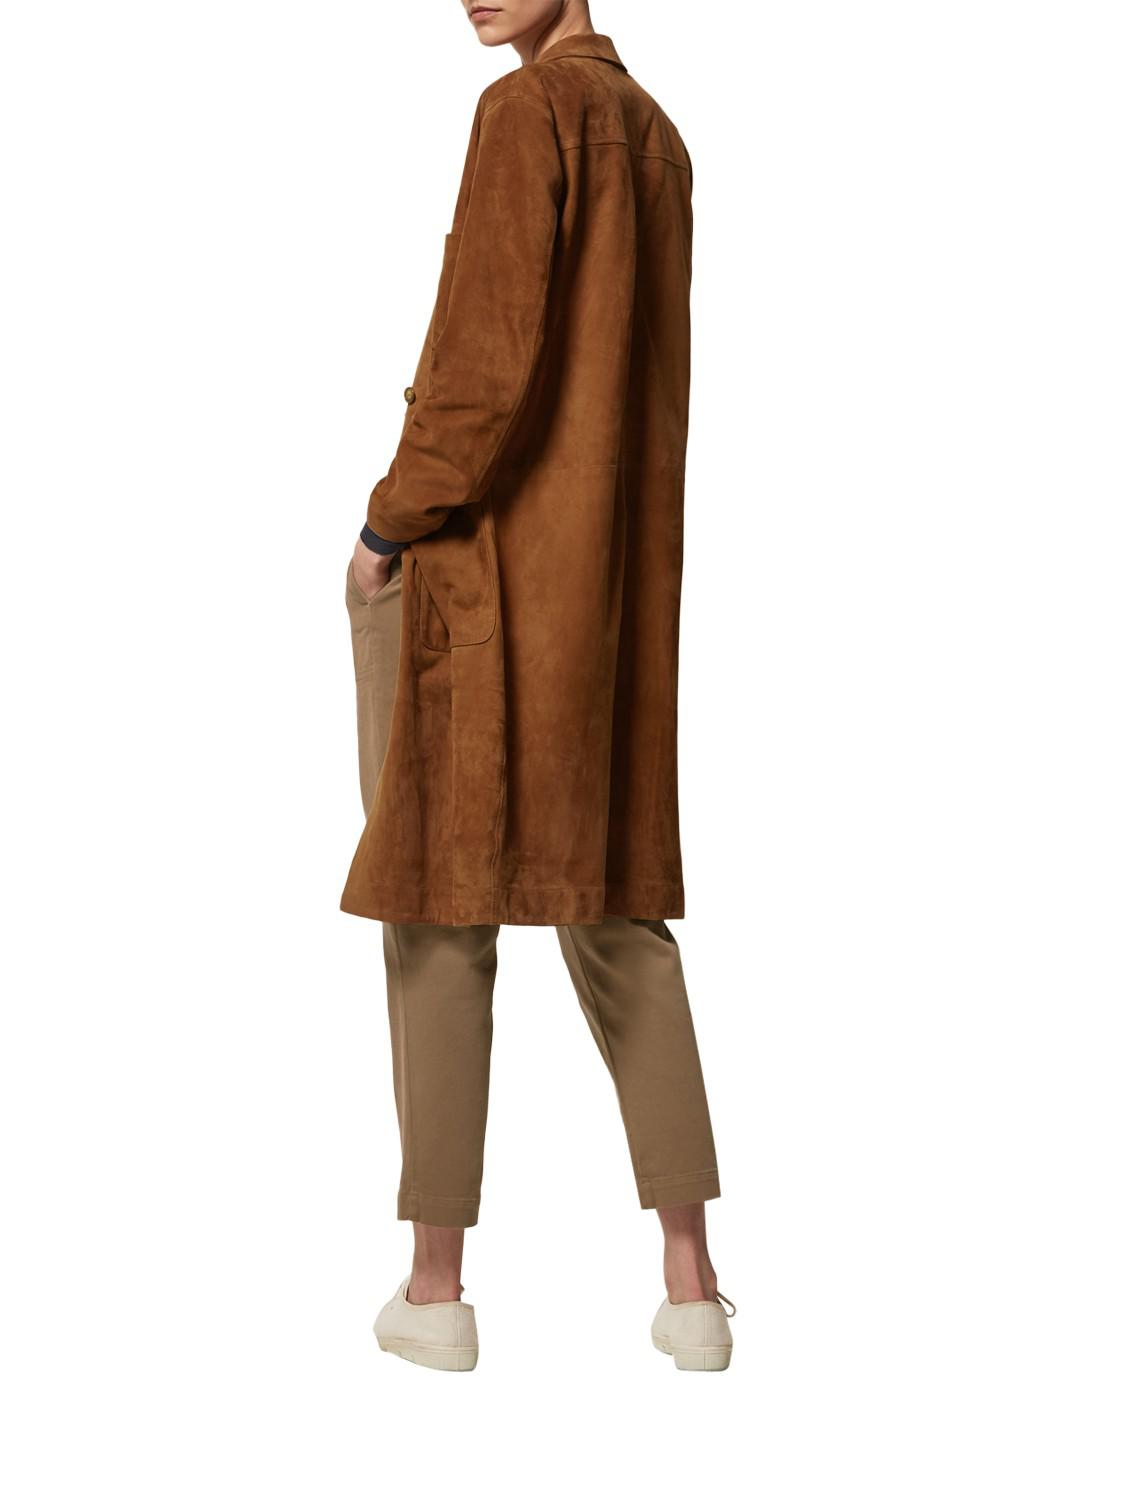 697879c8c83487 Toast Suede Leather Coat in Brown - Lyst